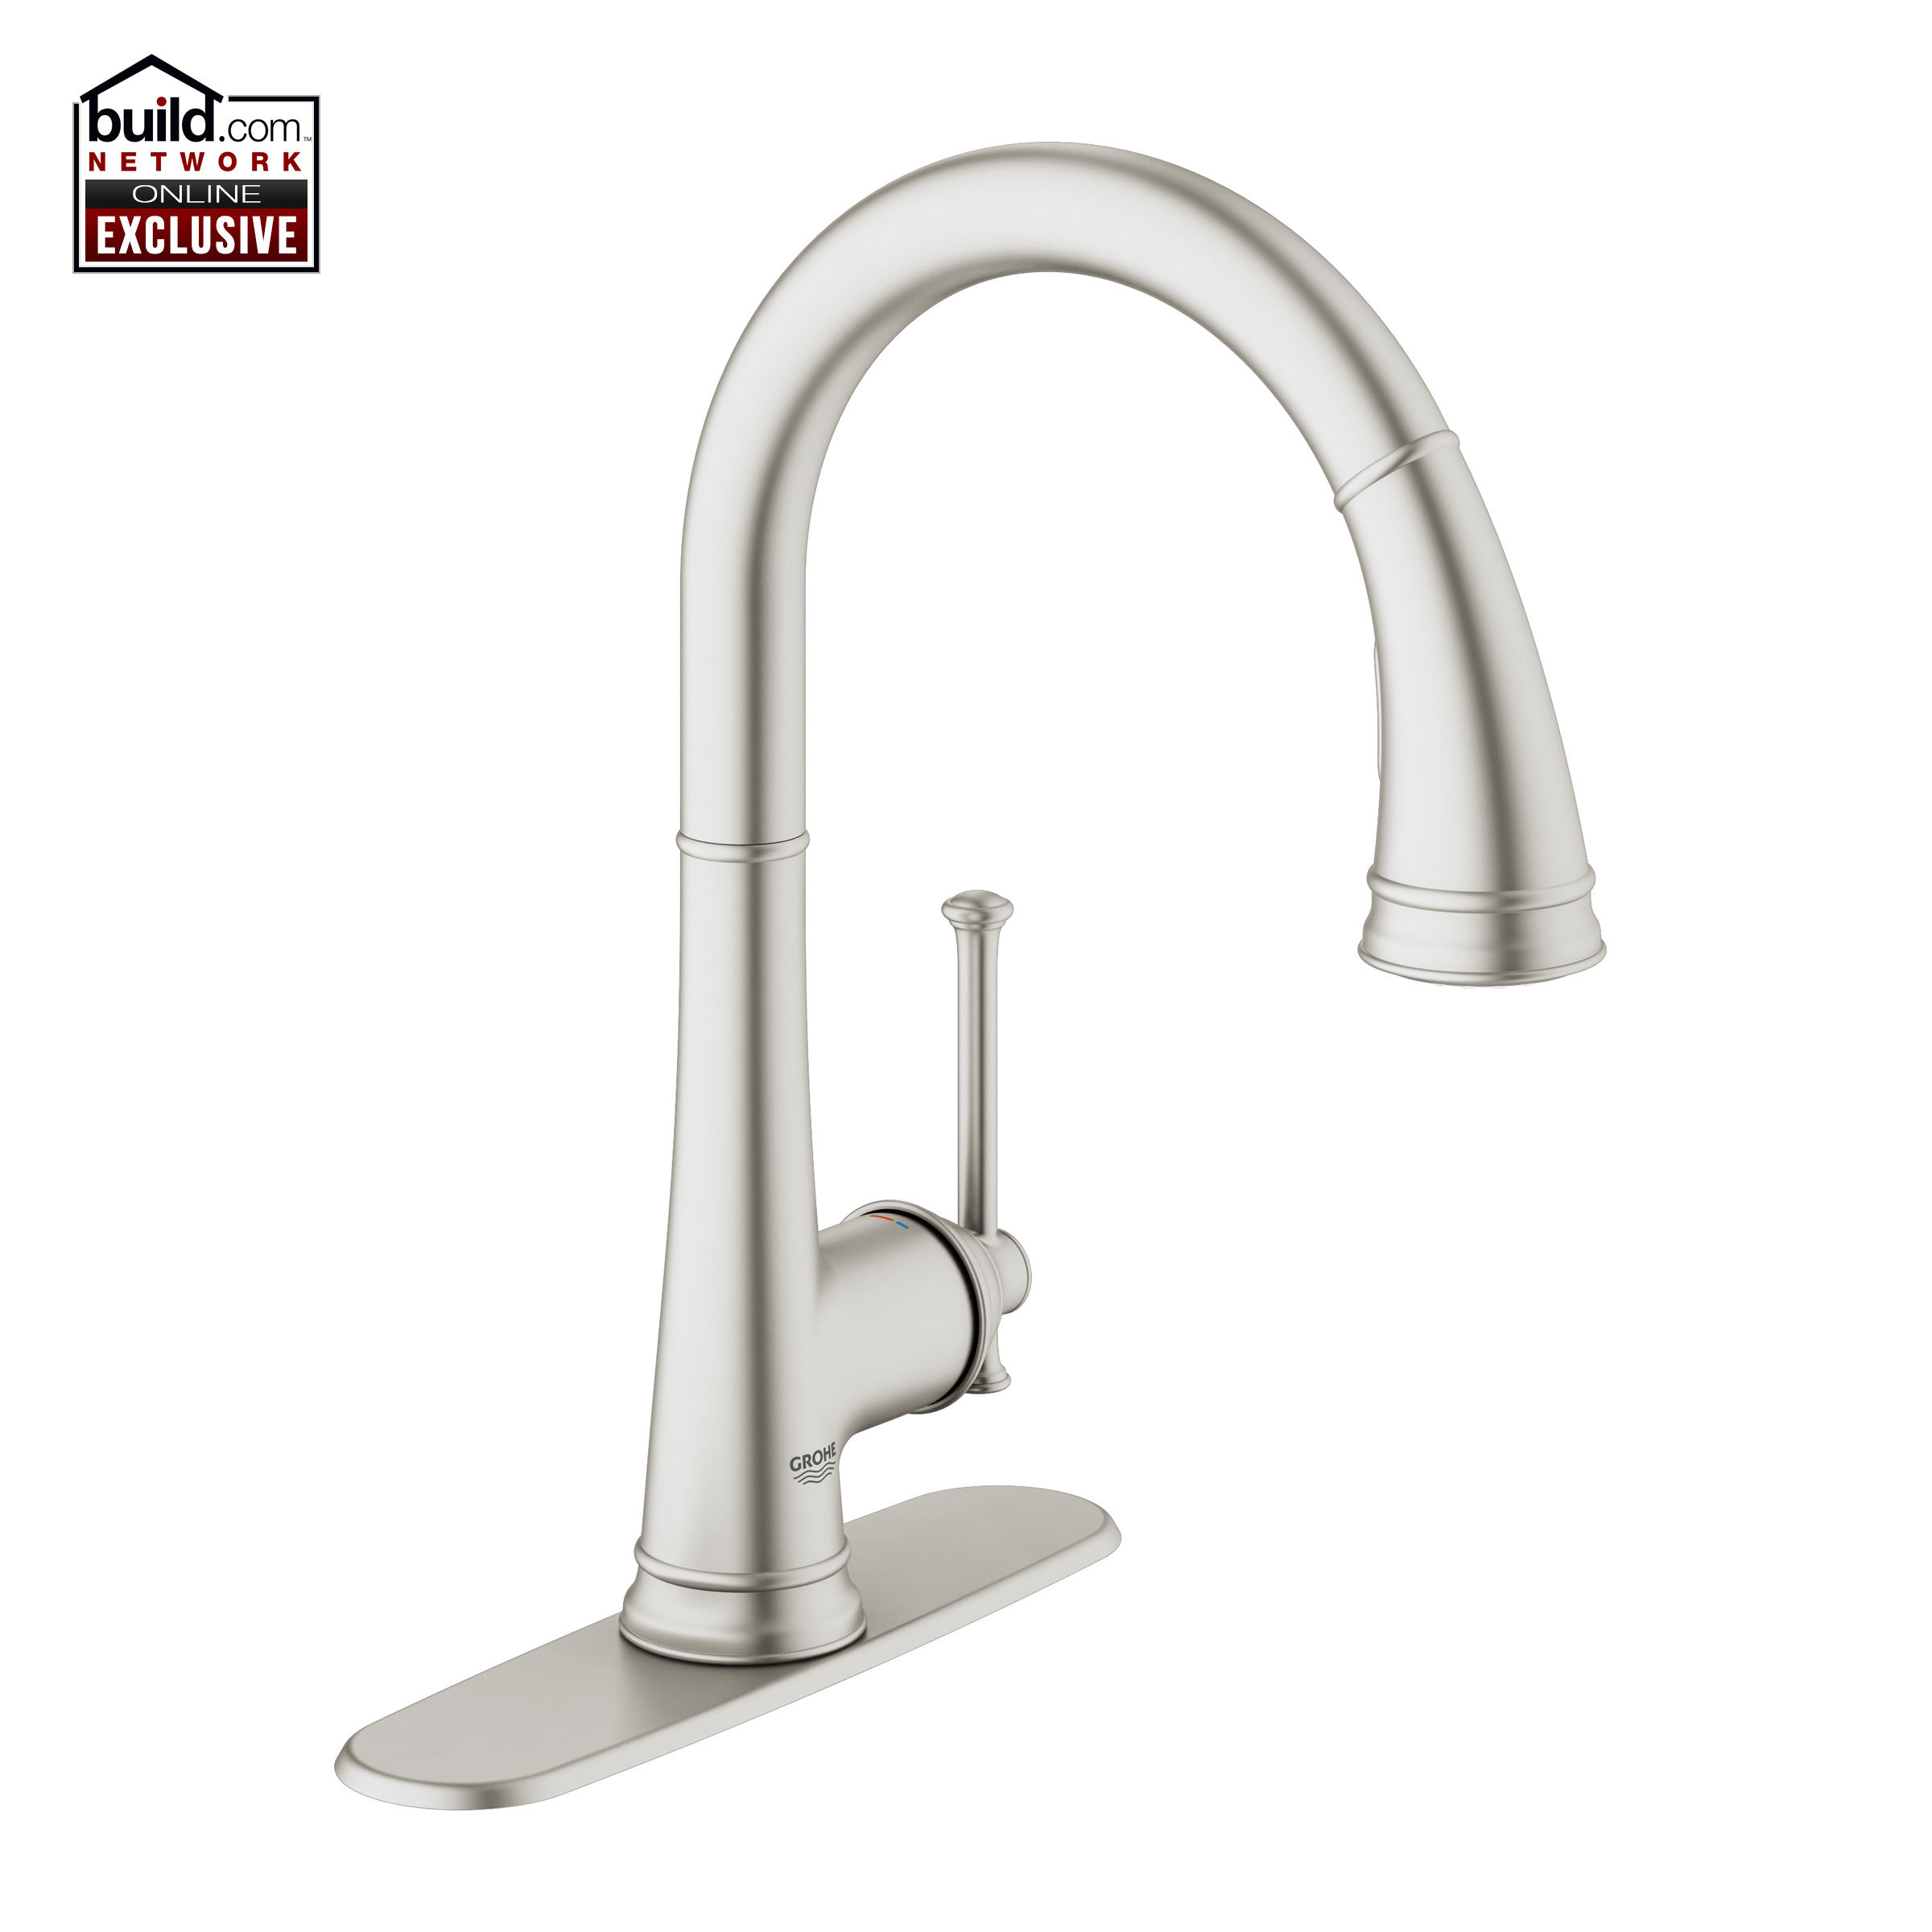 Grohe 30210ZB0 Oil Rubbed Bronze Joliette Traditional Pull-down ...